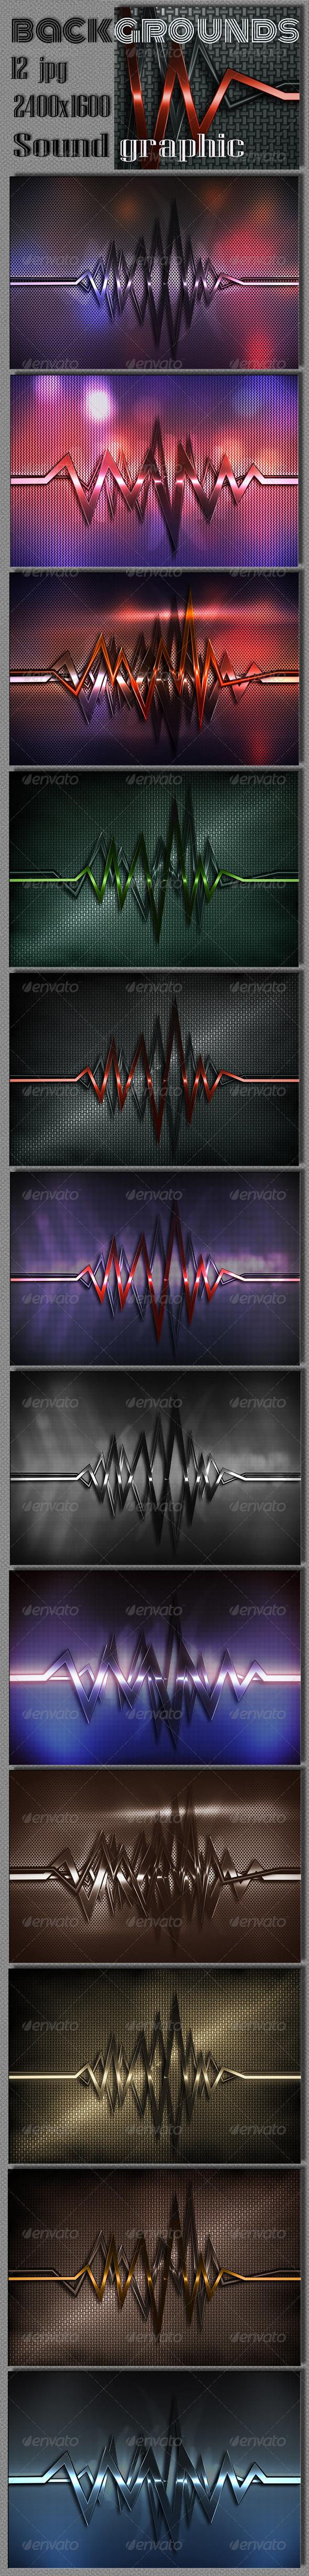 Sound Graphics Metal Background - Tech / Futuristic Backgrounds